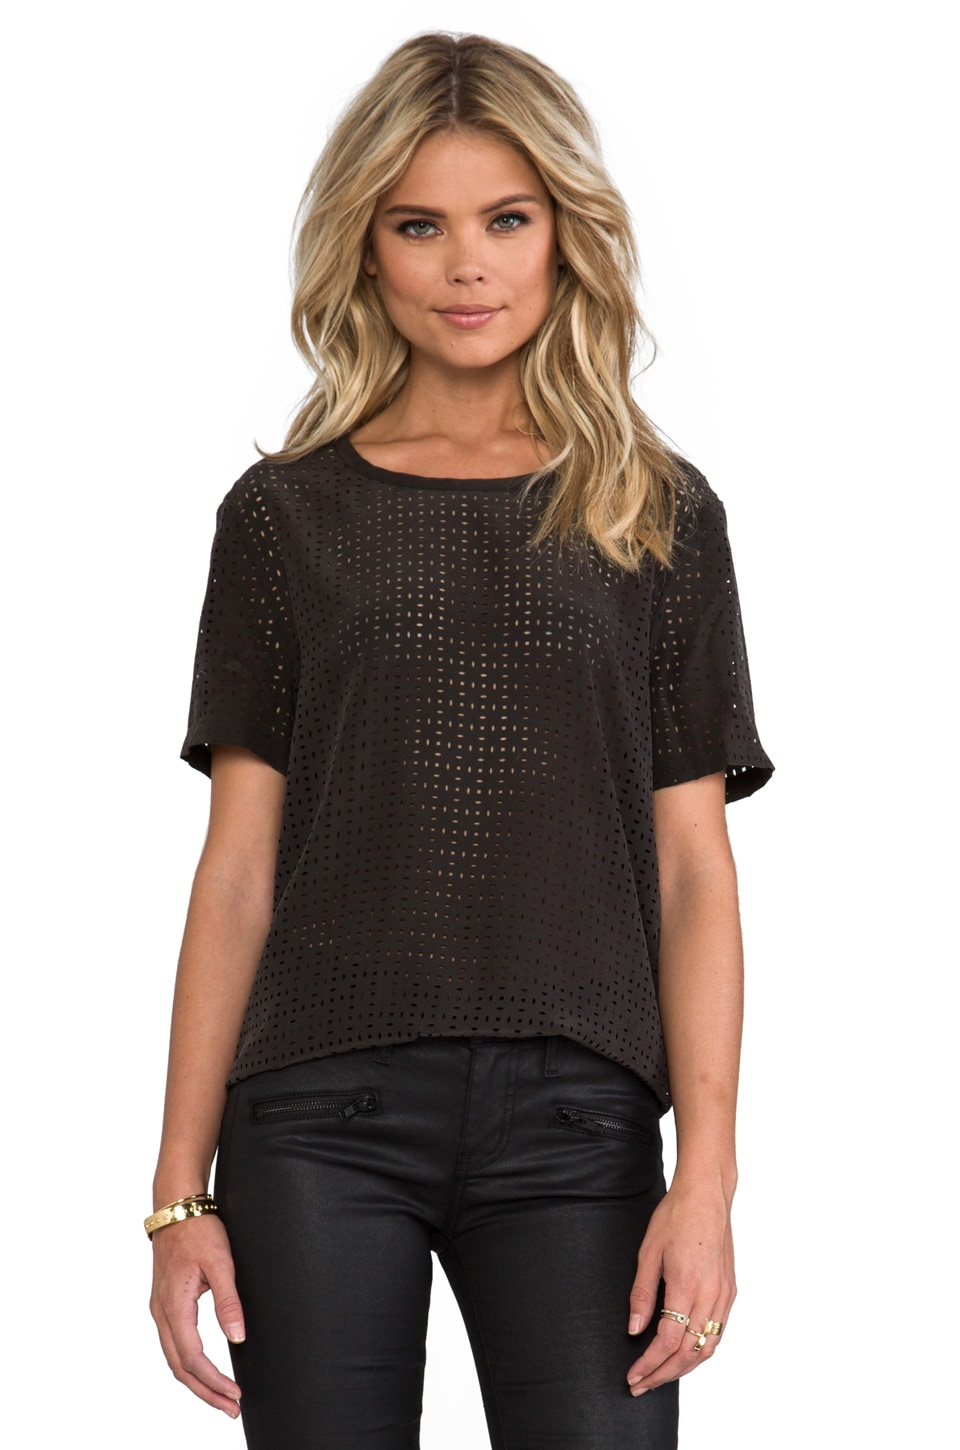 Equipment Riley Laser Cut Blouse in Black